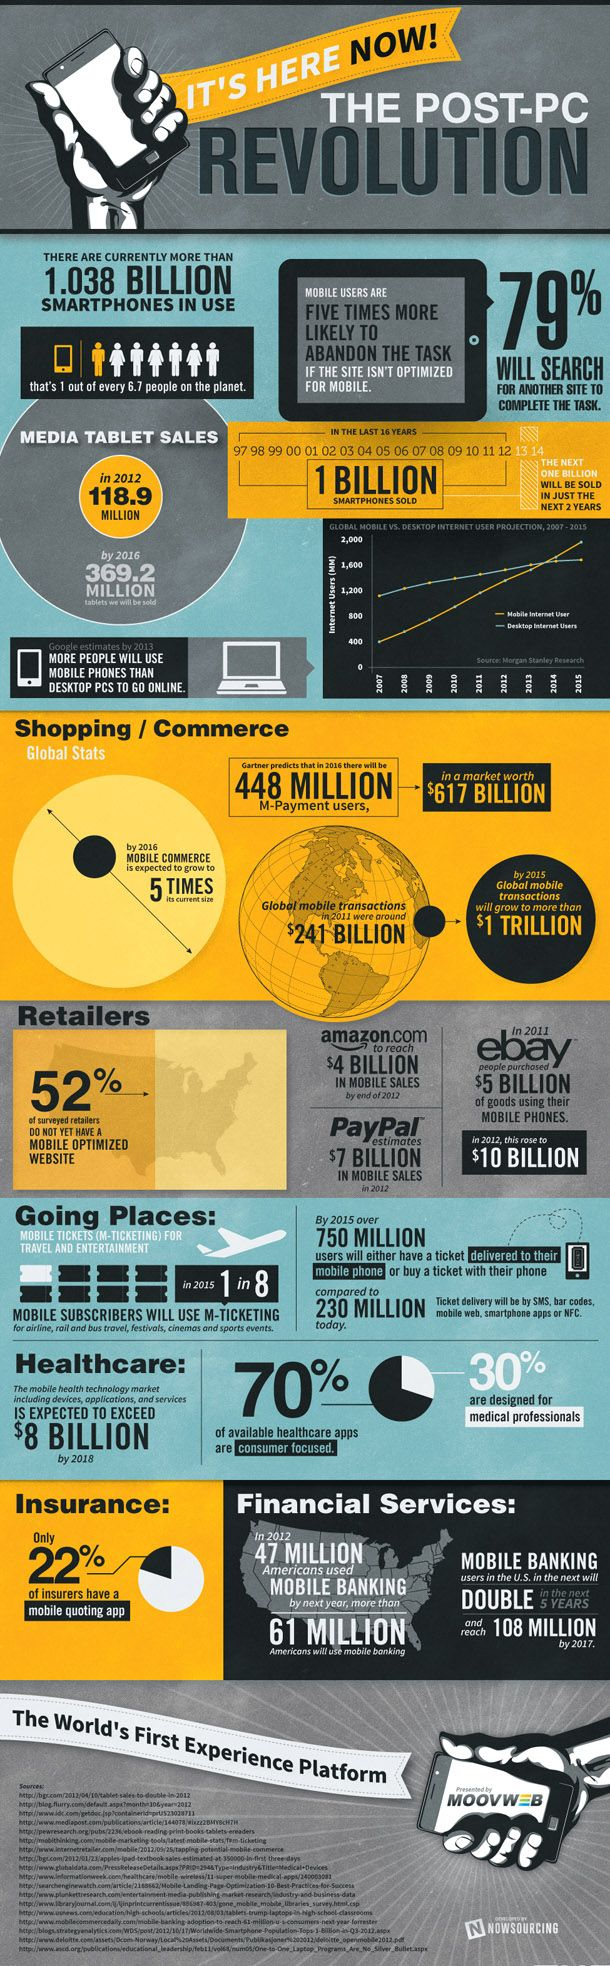 The post-PC revolution, spurred by the quick adoption of smartphones. #infographic